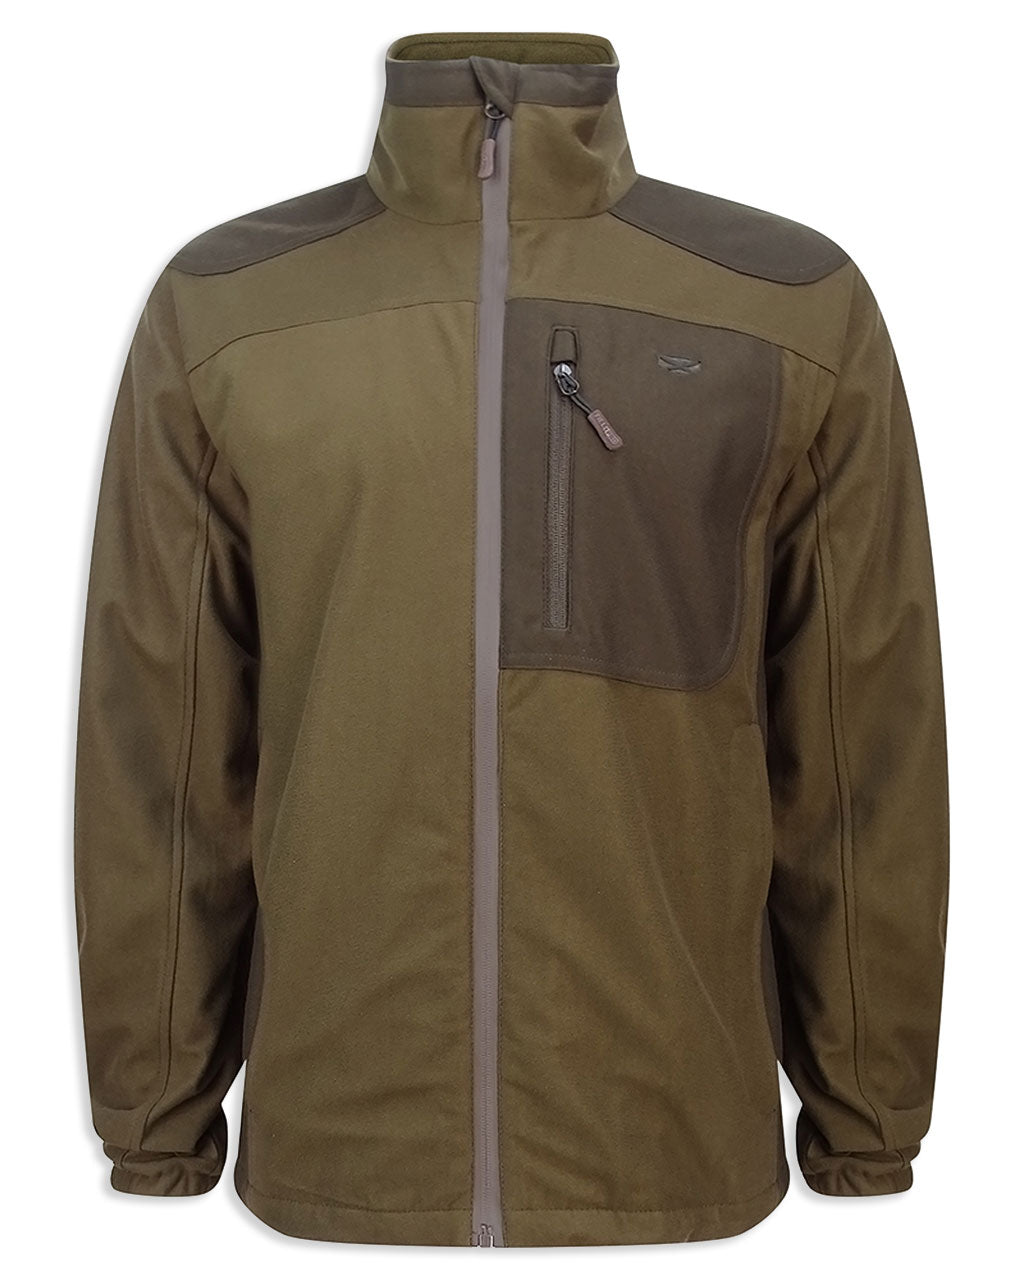 Front view Hoggs Kinross Waterproof Field Jacket